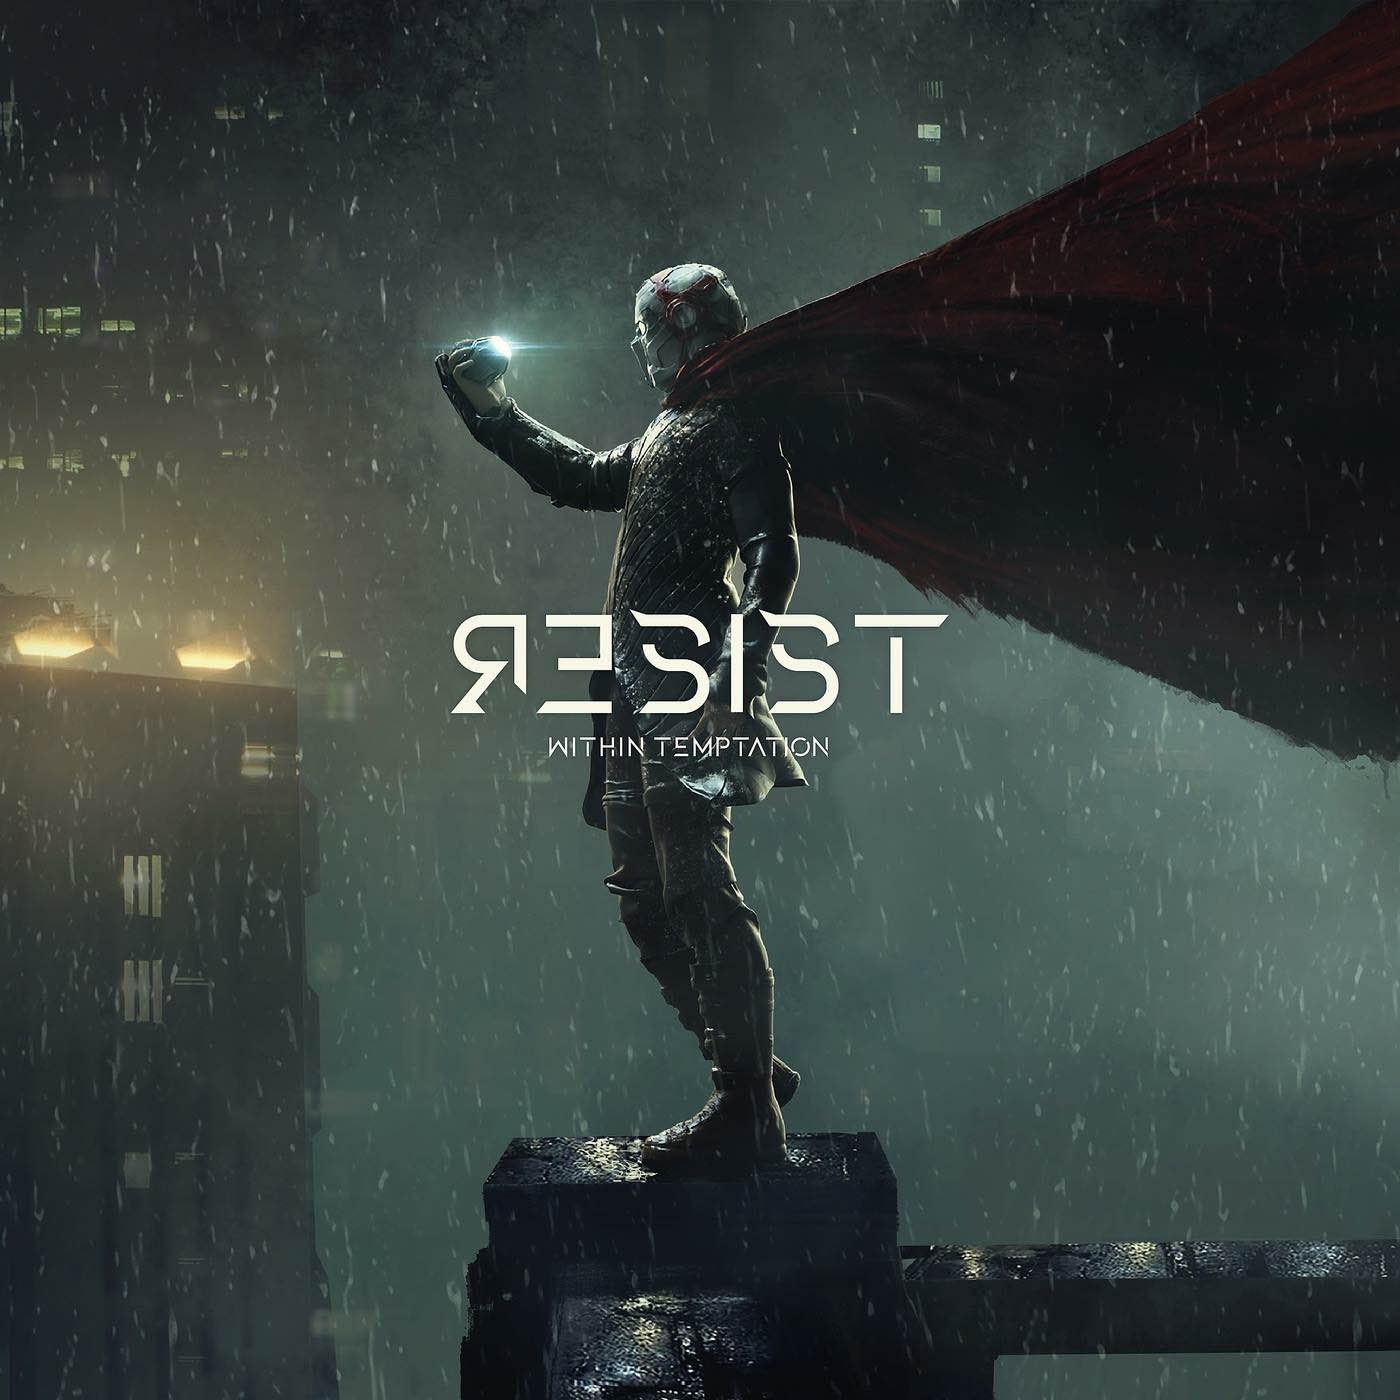 Within Temptation album Resist